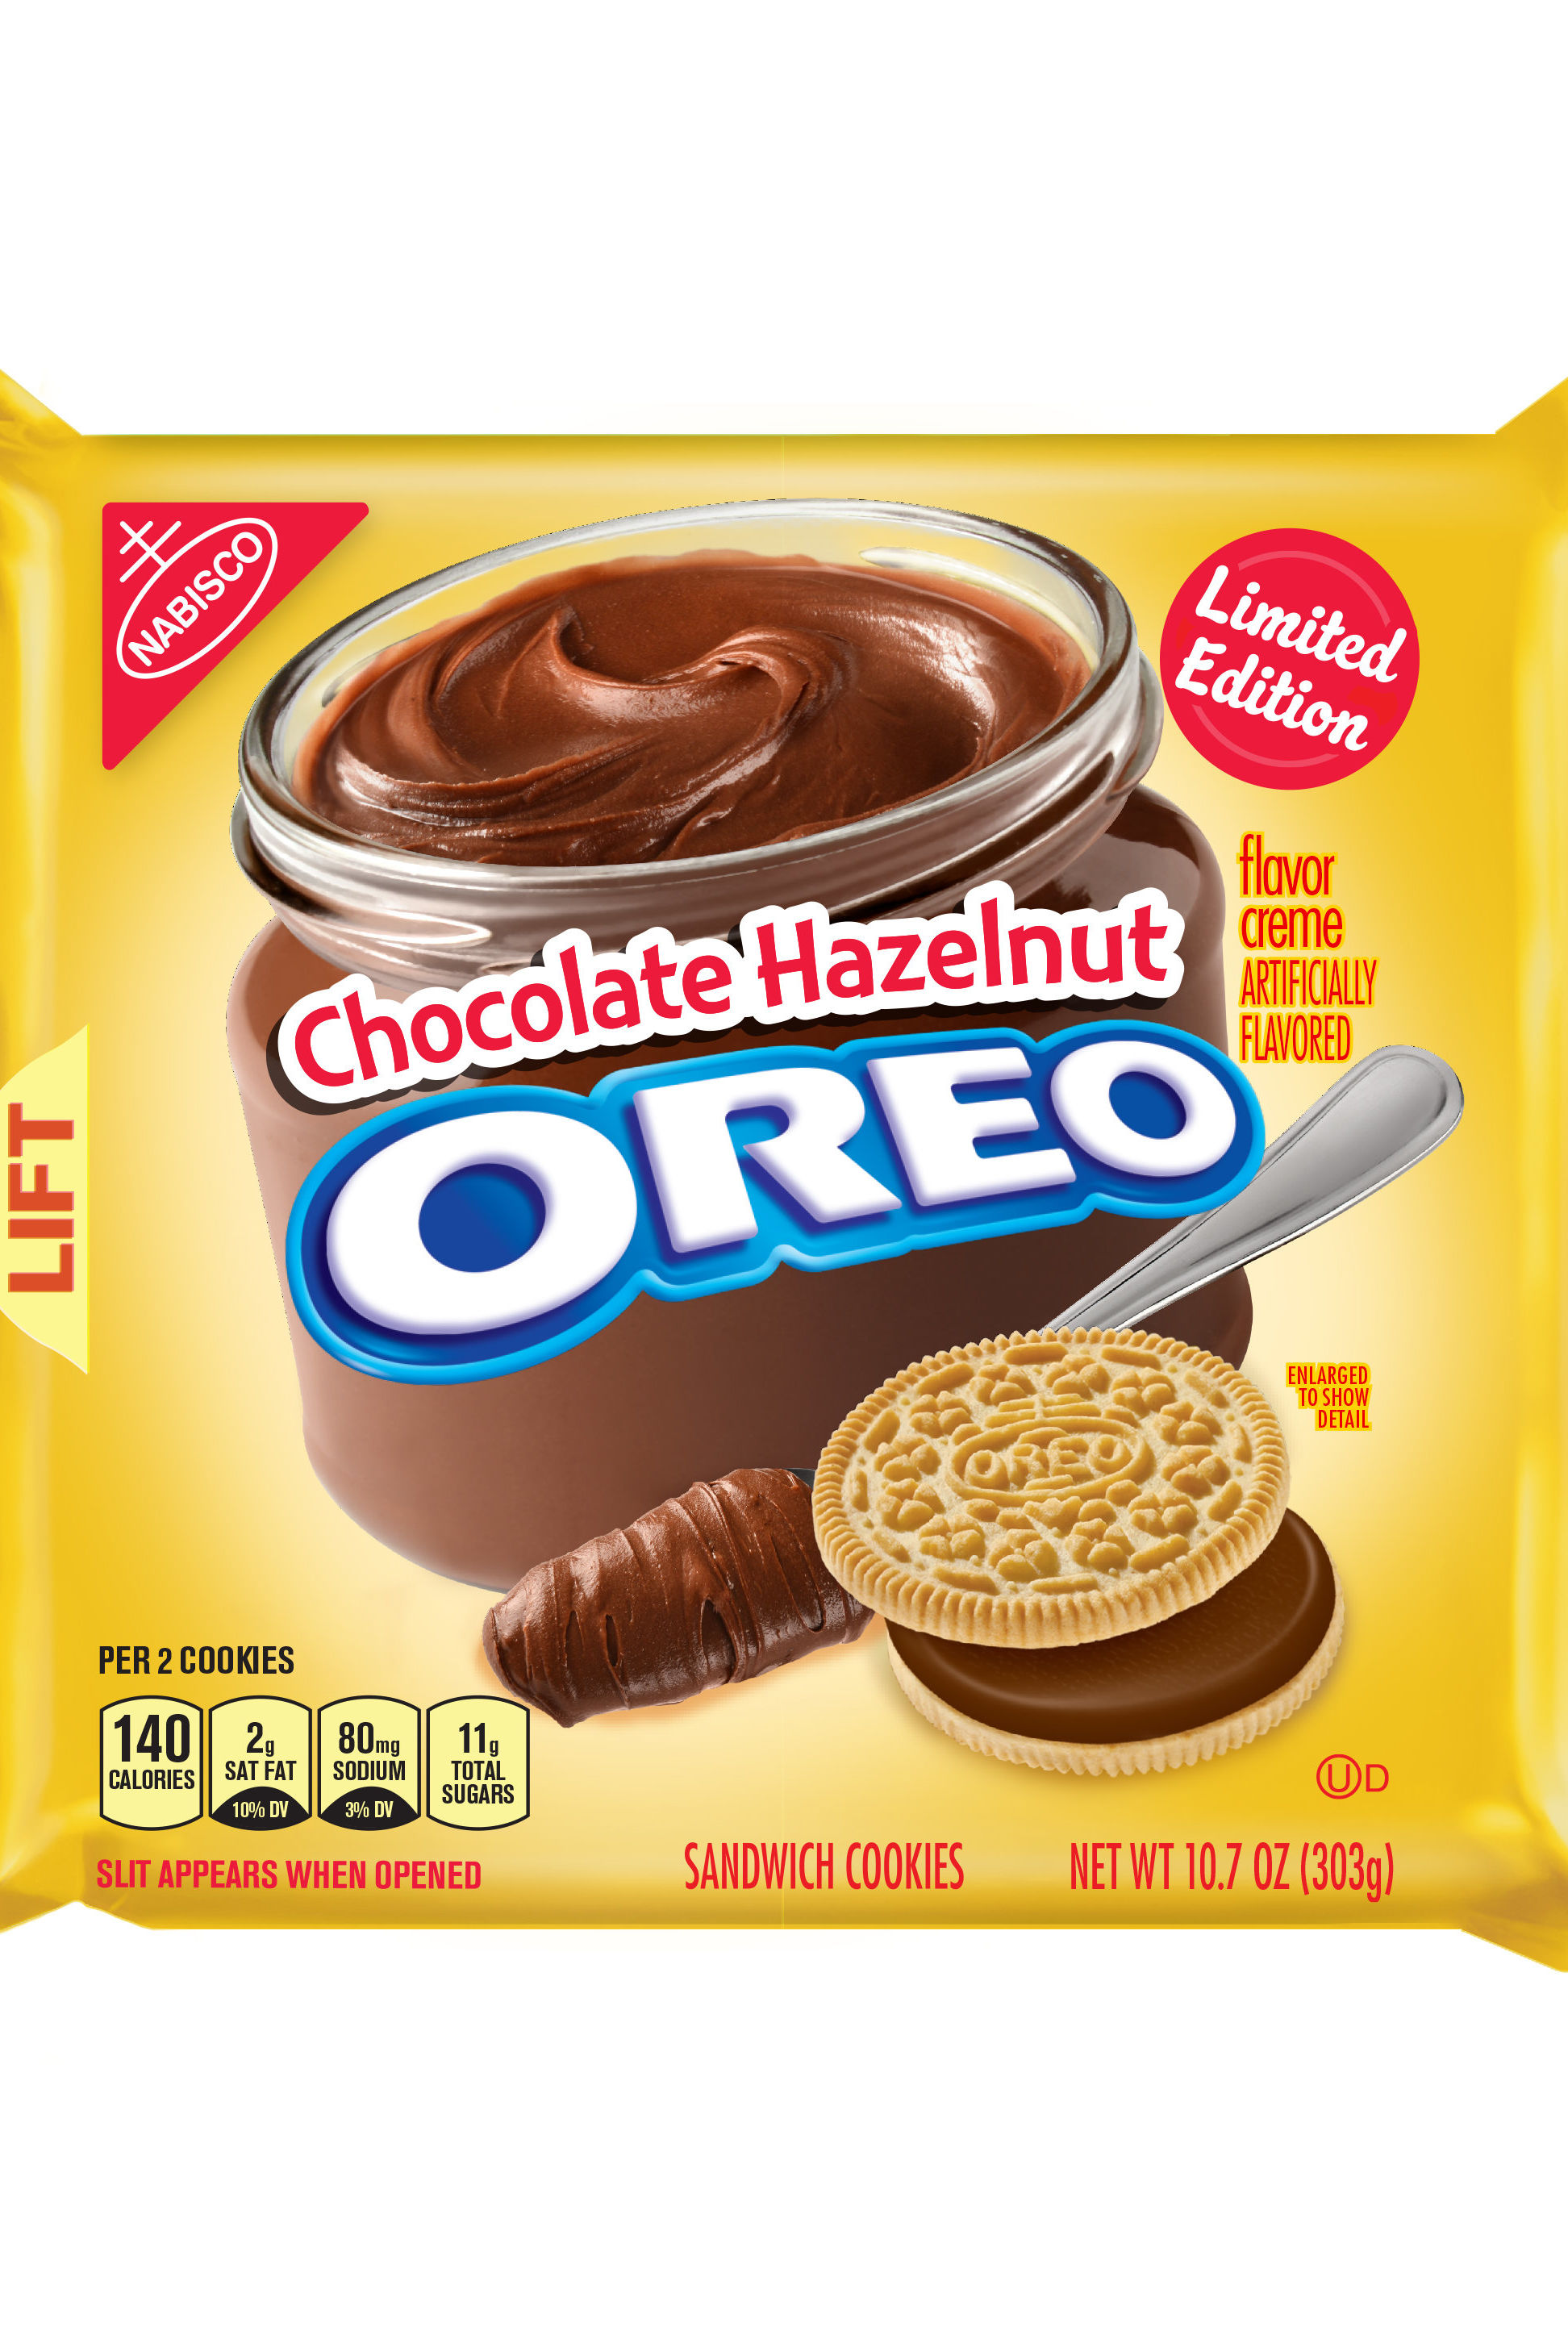 Oreo Just Announced 5 New Flavors Coming in 2018